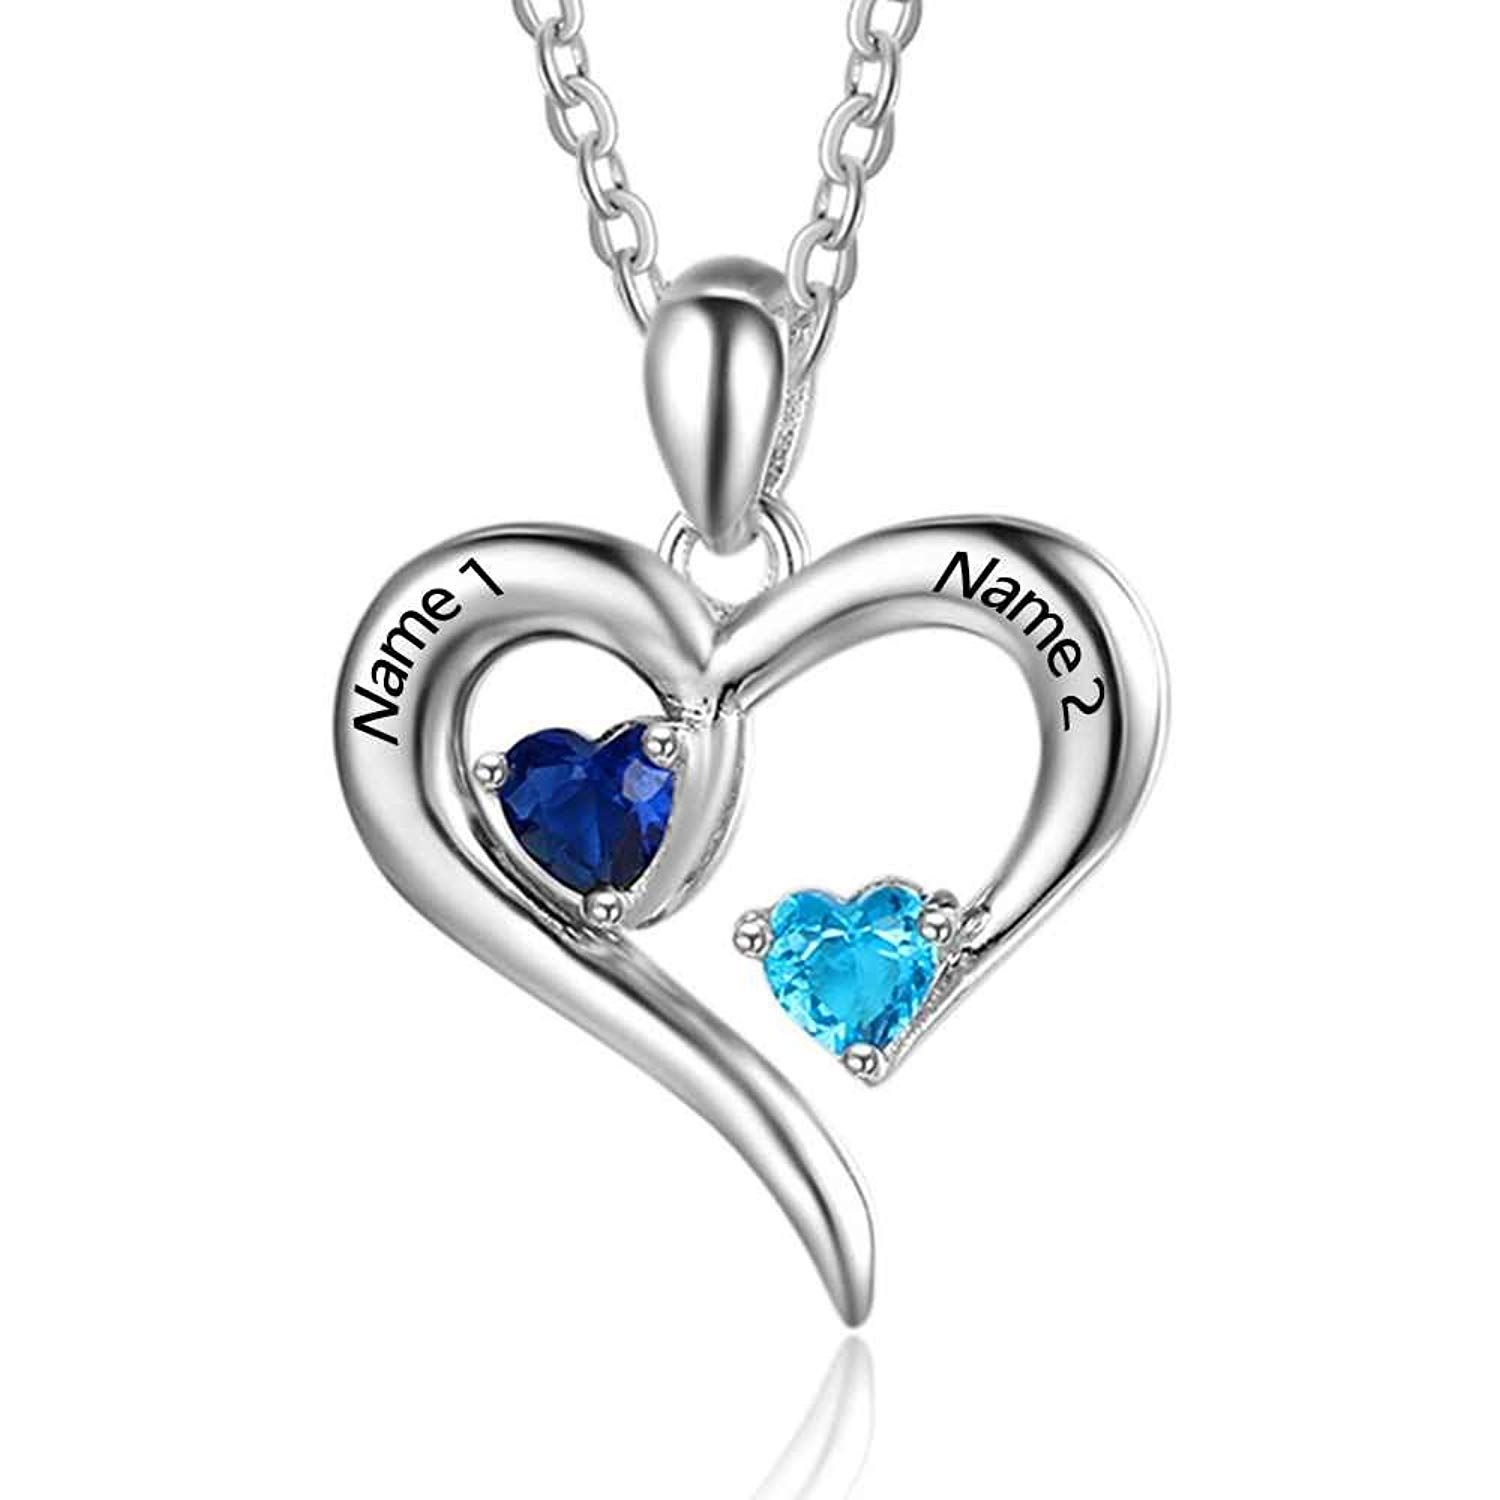 Personalized 2 Names Simulated Birthstones Necklaces 2 Couple Hearts Name Engraved Pendants Fo Birthstone Necklace Birthstone Jewelry Sterling Silver Necklaces